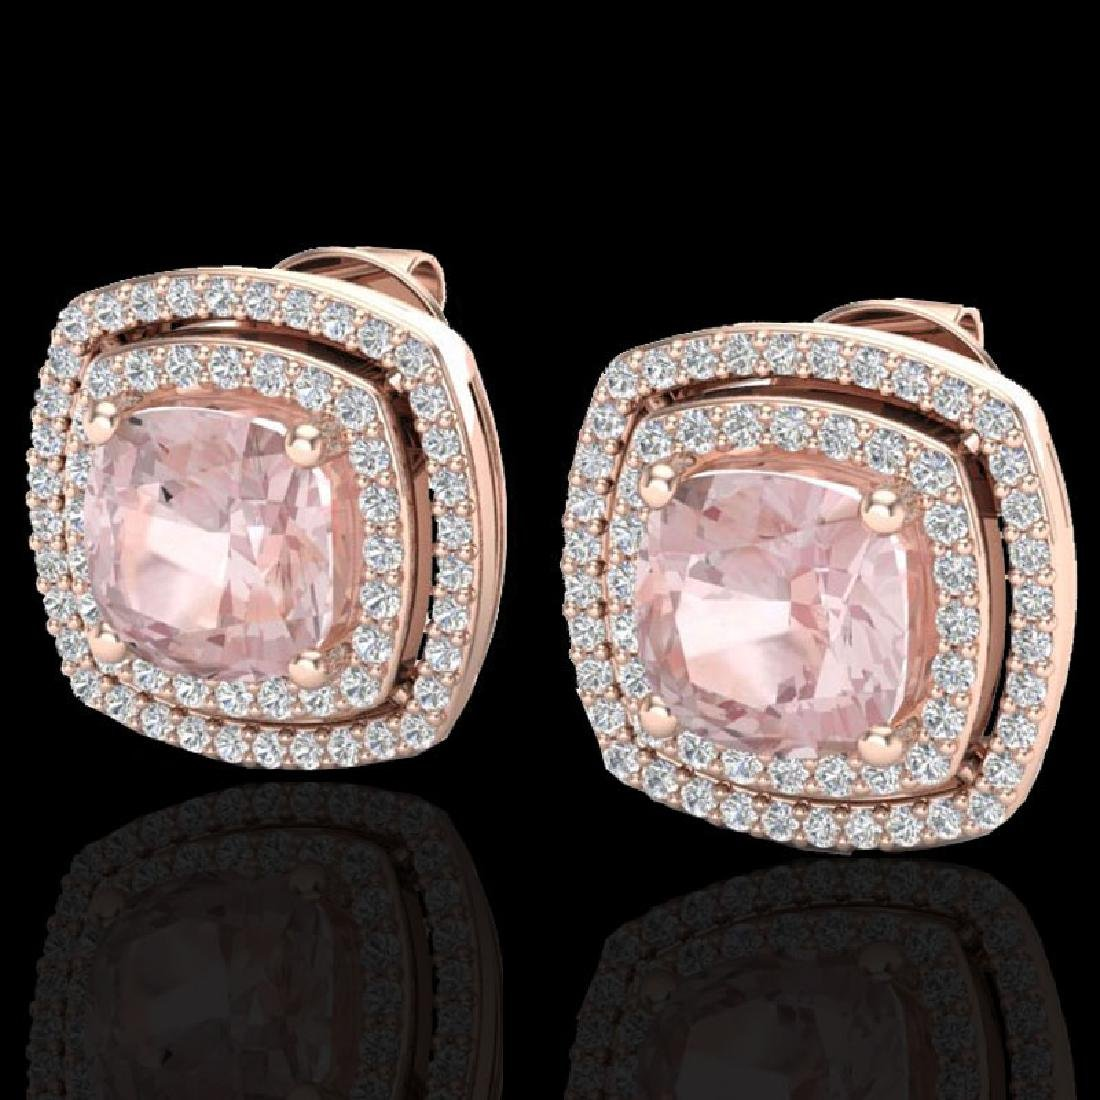 3.95 CTW Morganite & Micro Pave VS/SI Diamond Halo